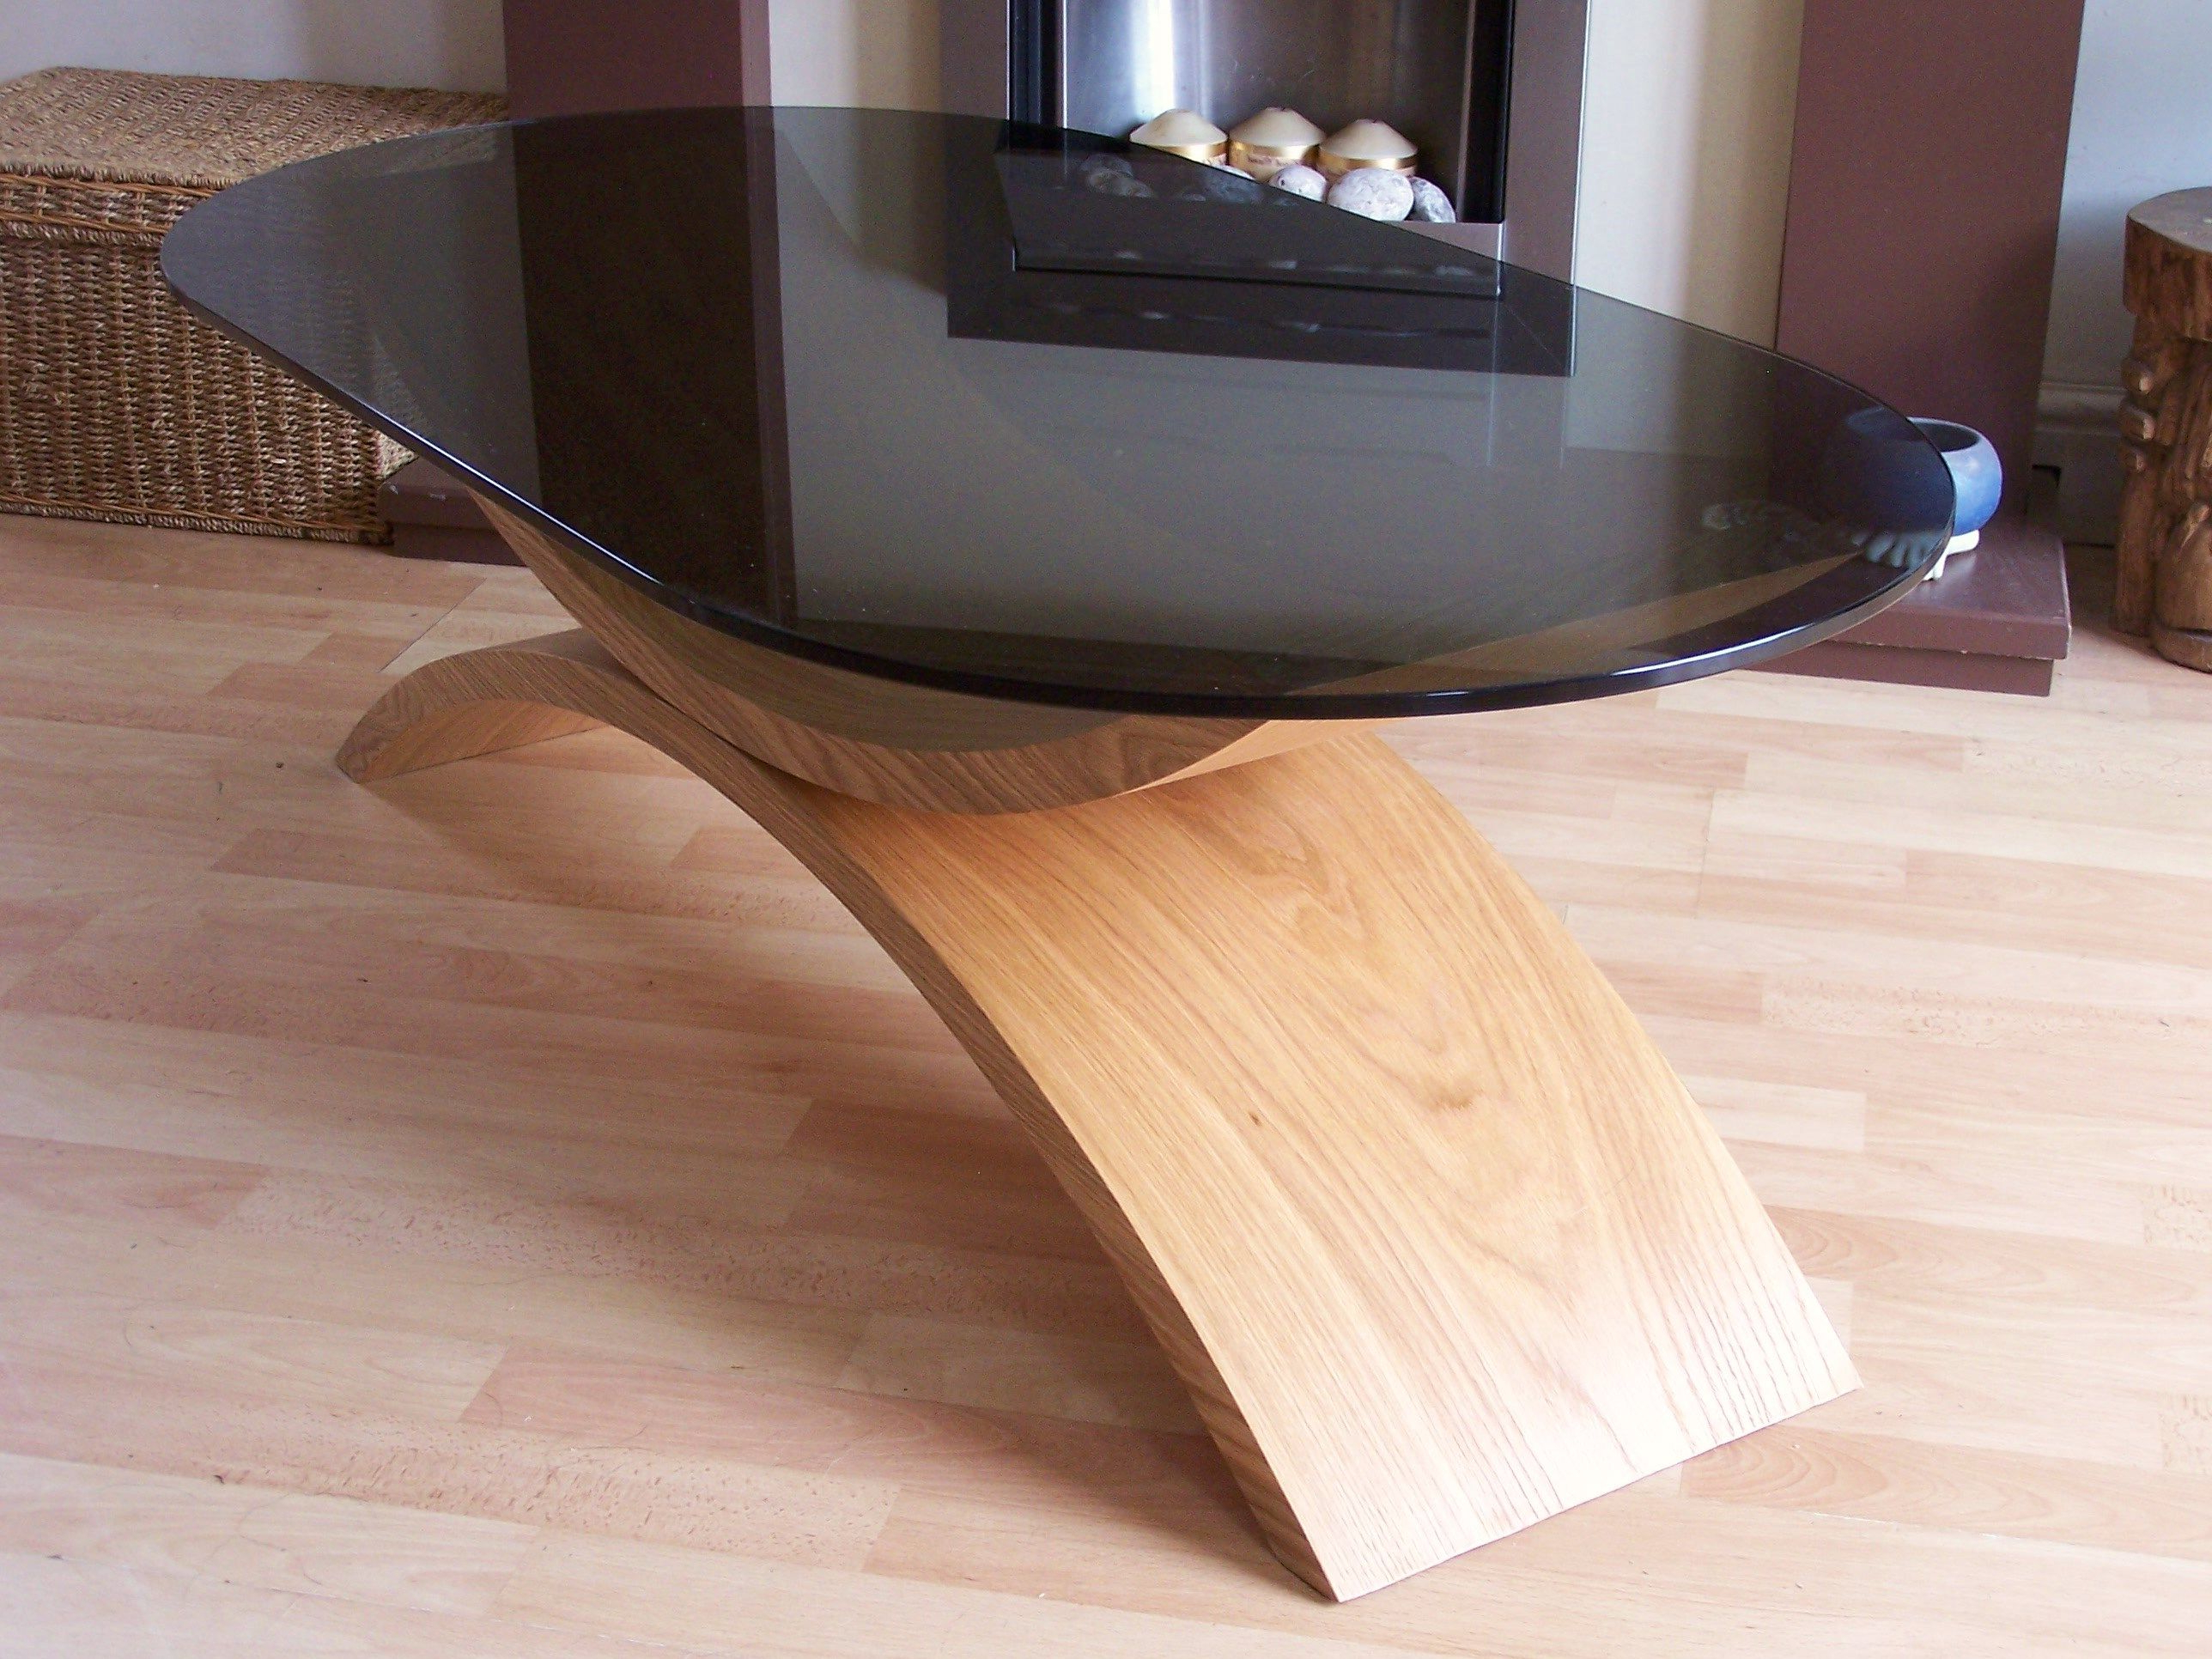 Curved Wood Coffee Table. Contemporary Design. Smoked Glass Top Pertaining To Newest Contemporary Curves Coffee Tables (Gallery 16 of 20)